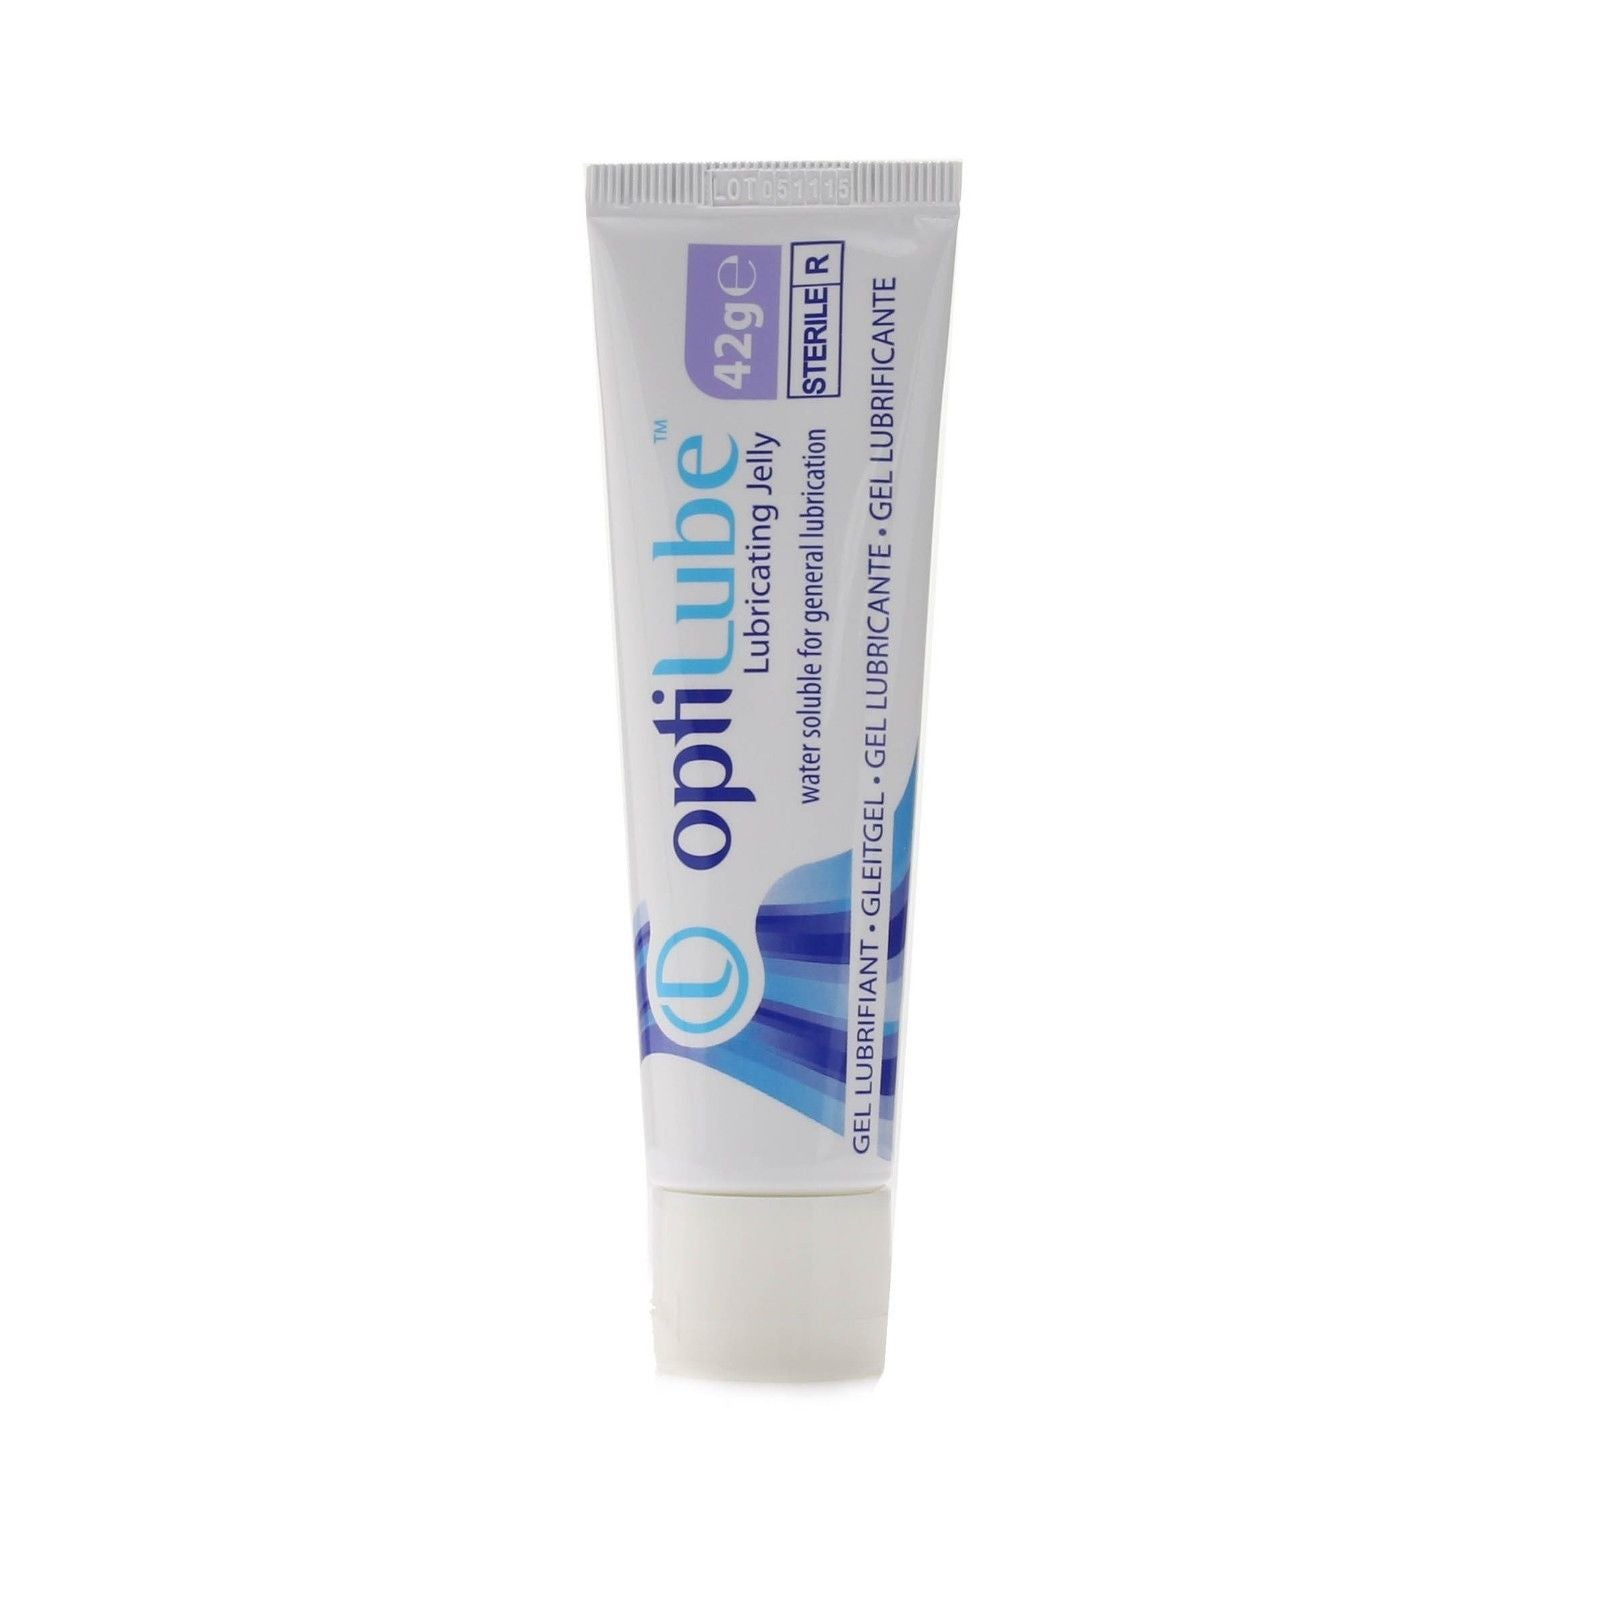 Optilube Sterile Lubricating Jelly - 42g Tube - SINGLE NEEDLE TATTOO